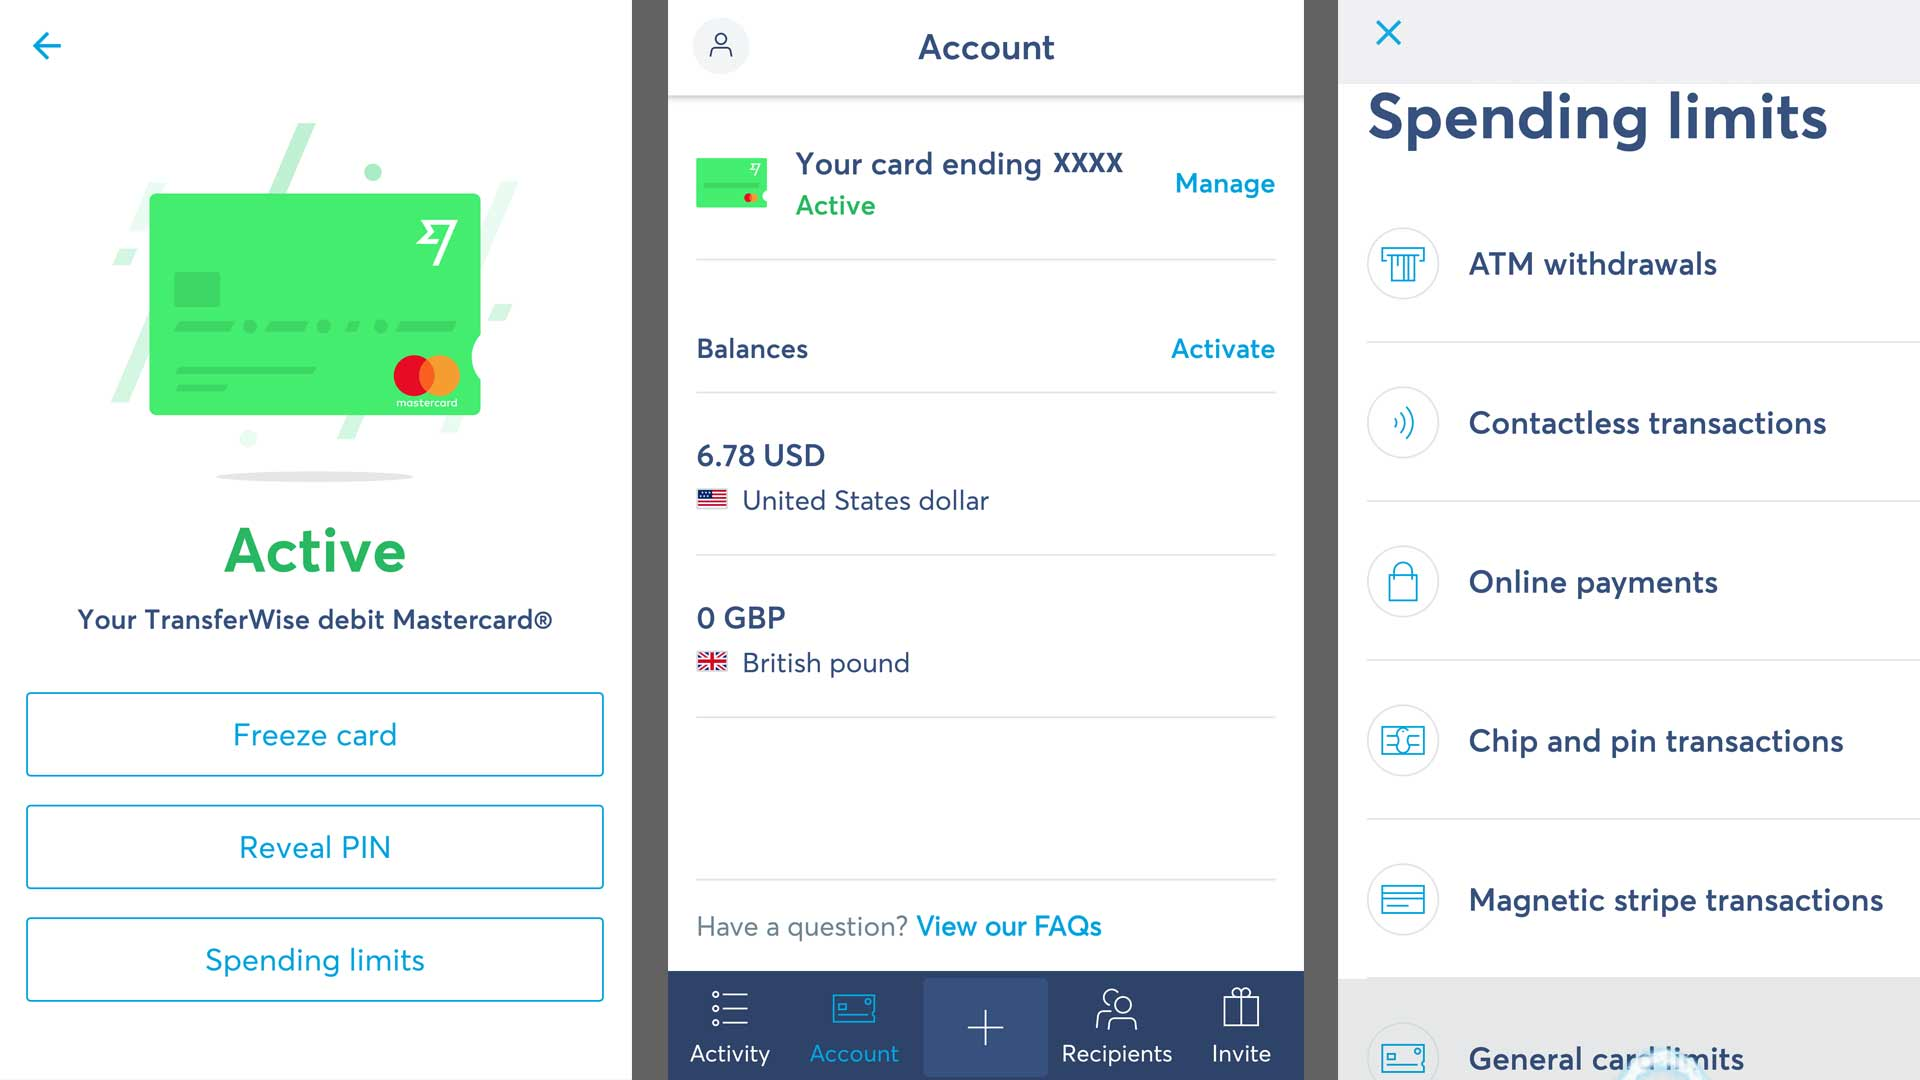 telas do aplicativo da transferwise borderless account